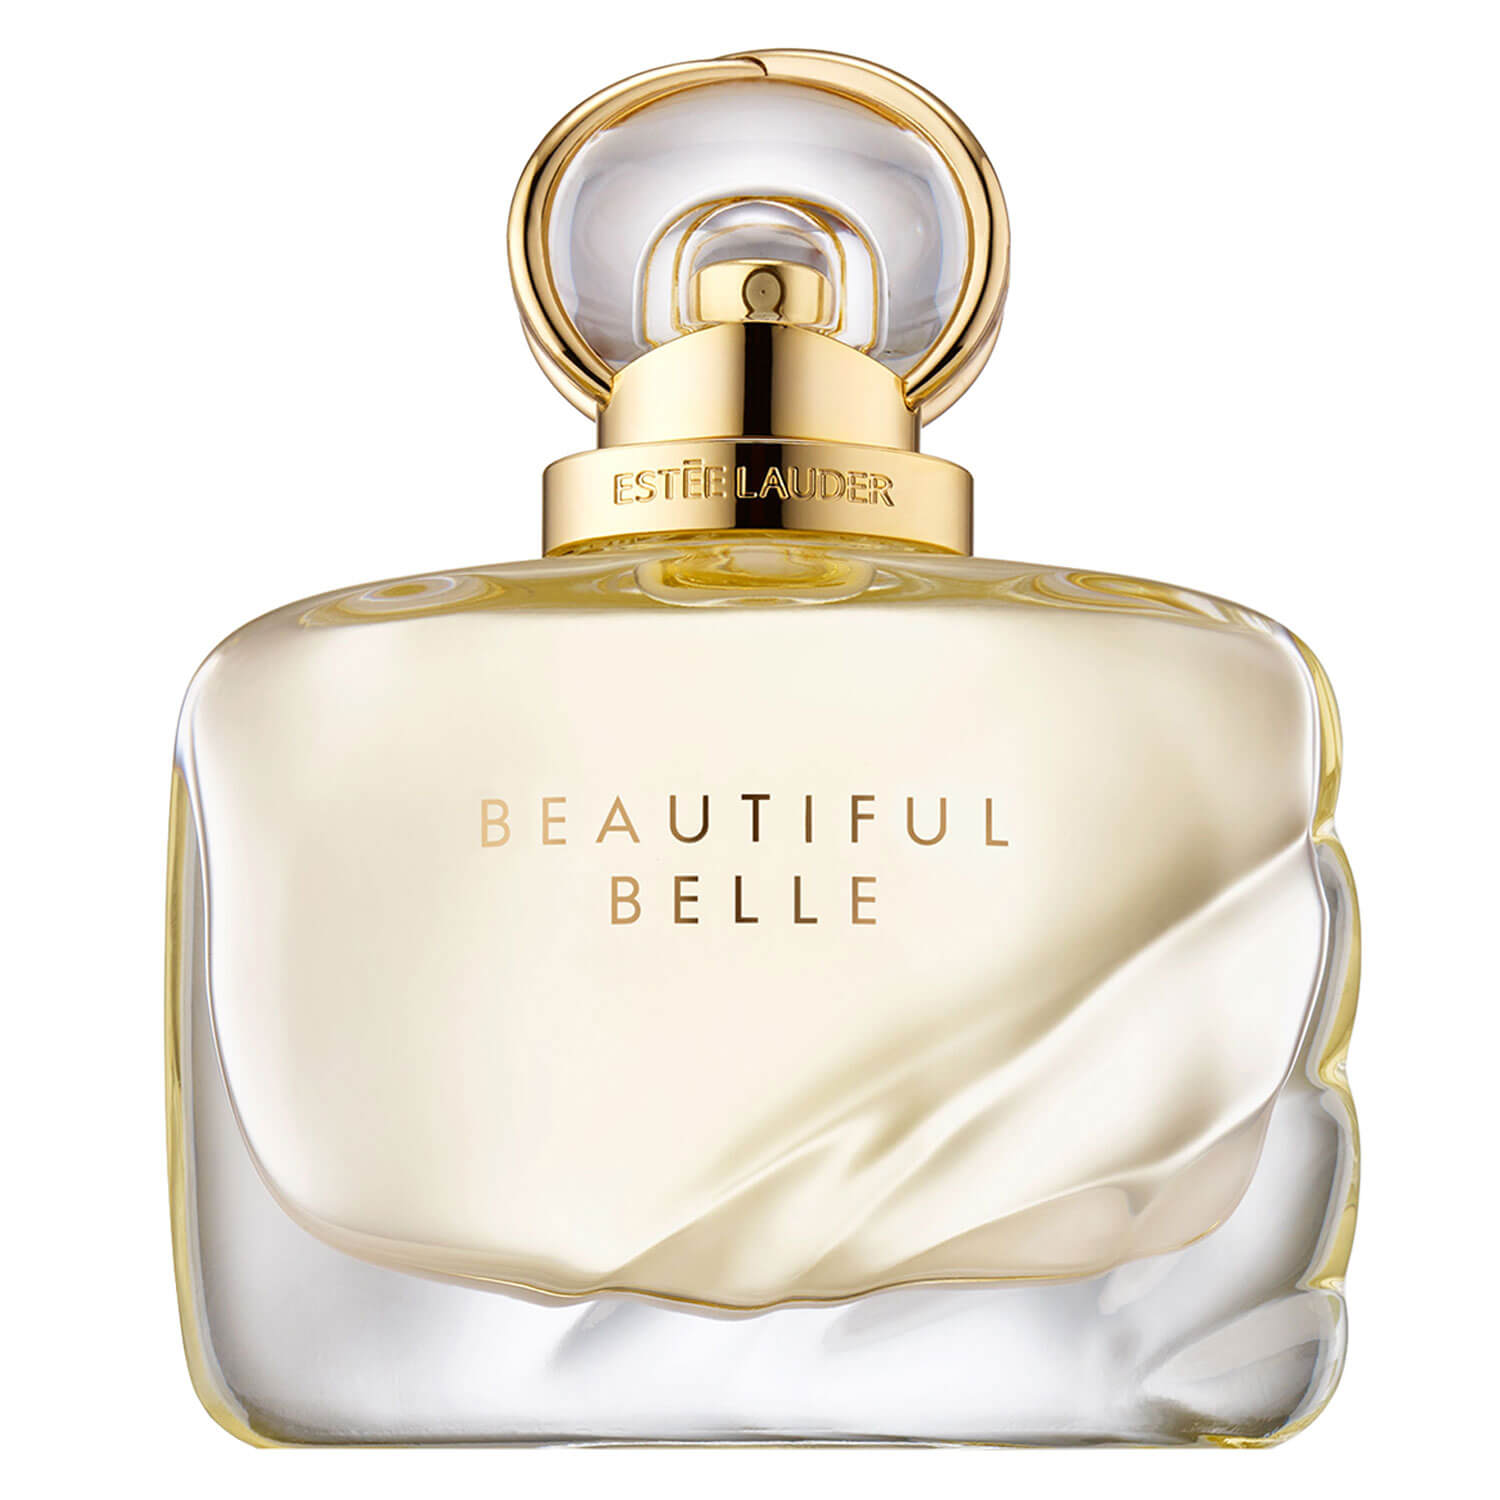 Beautiful Belle - Eau de Parfum Spray